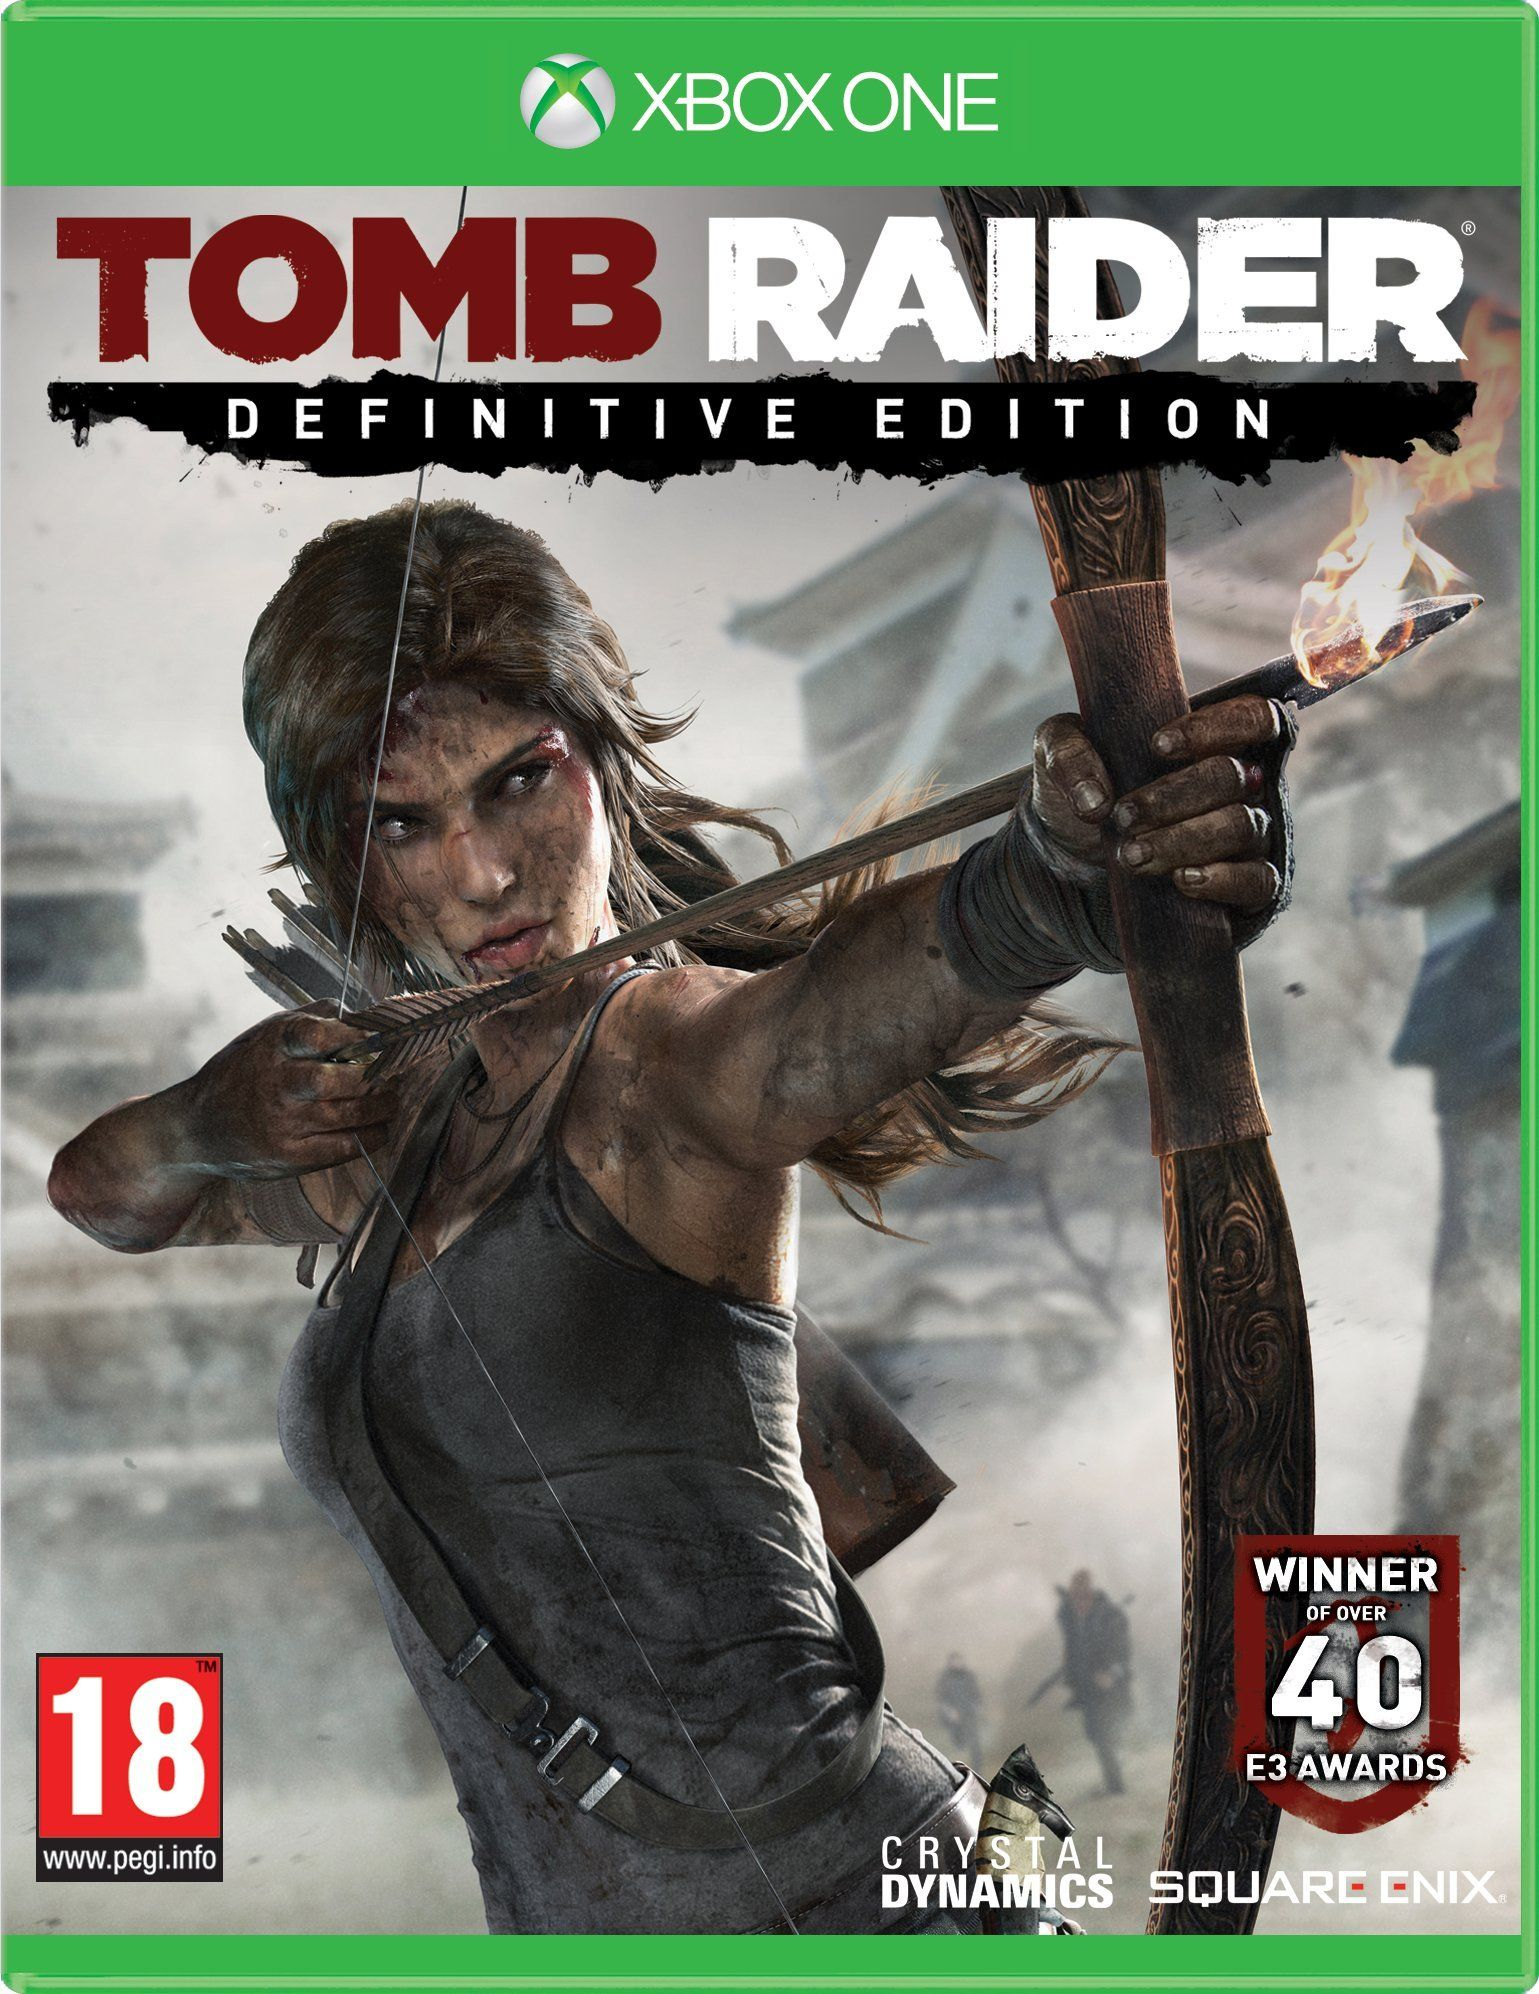 Tomb Raider Definitive Edition Limited Digipack Version Xbox One Amazon Co Uk Pc Video Games Tomb Raider Game Tomb Raider Xbox One Tomb Raider Ps4